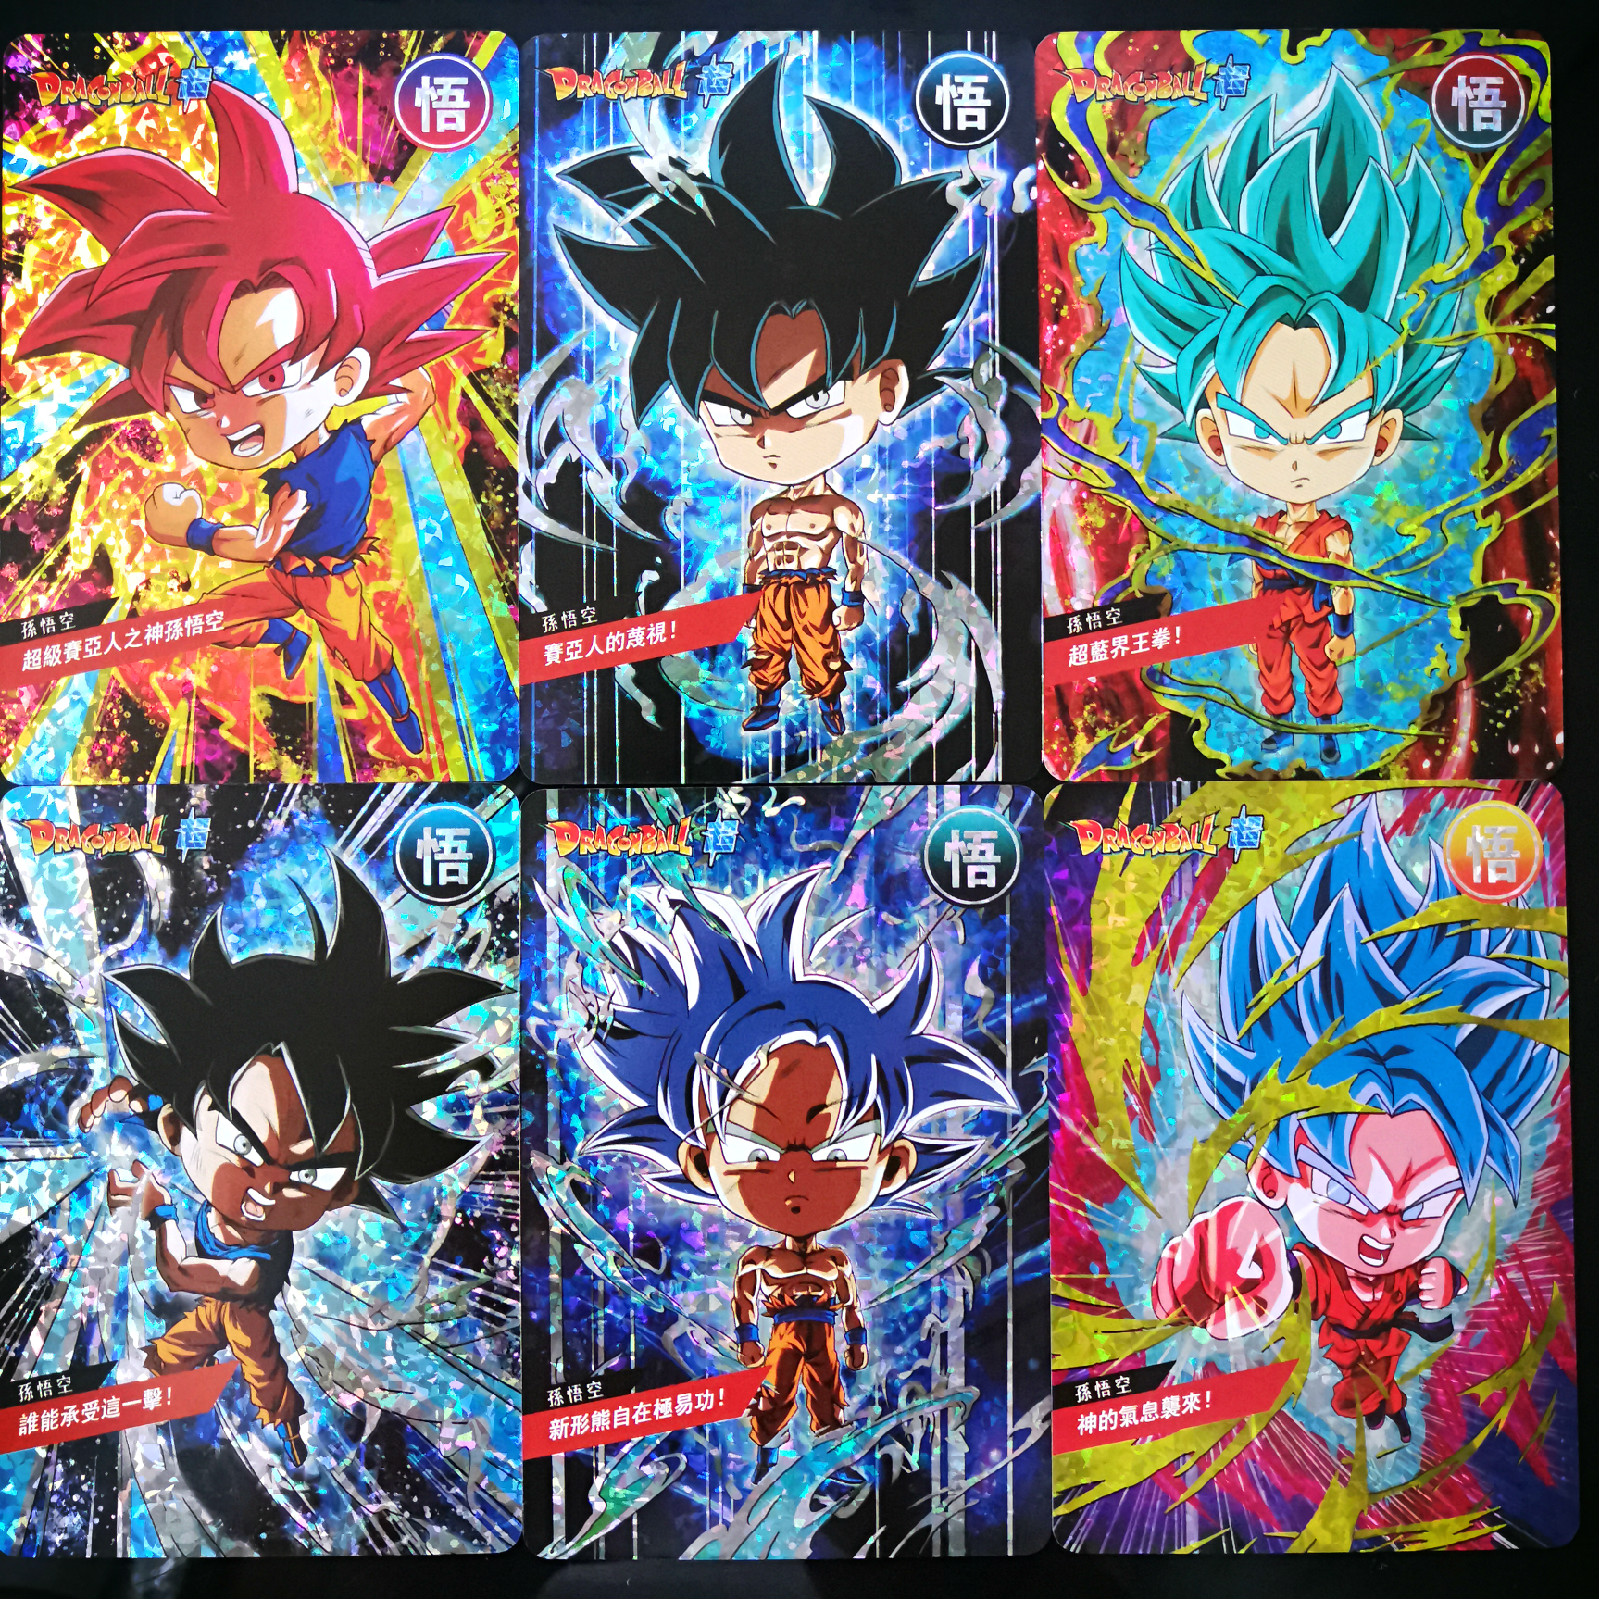 10pcs/set Q Super Dragon Ball Limited To 50 Sets Heroes Battle Card Ultra Instinct Goku Vegeta Super Game Collection Cards